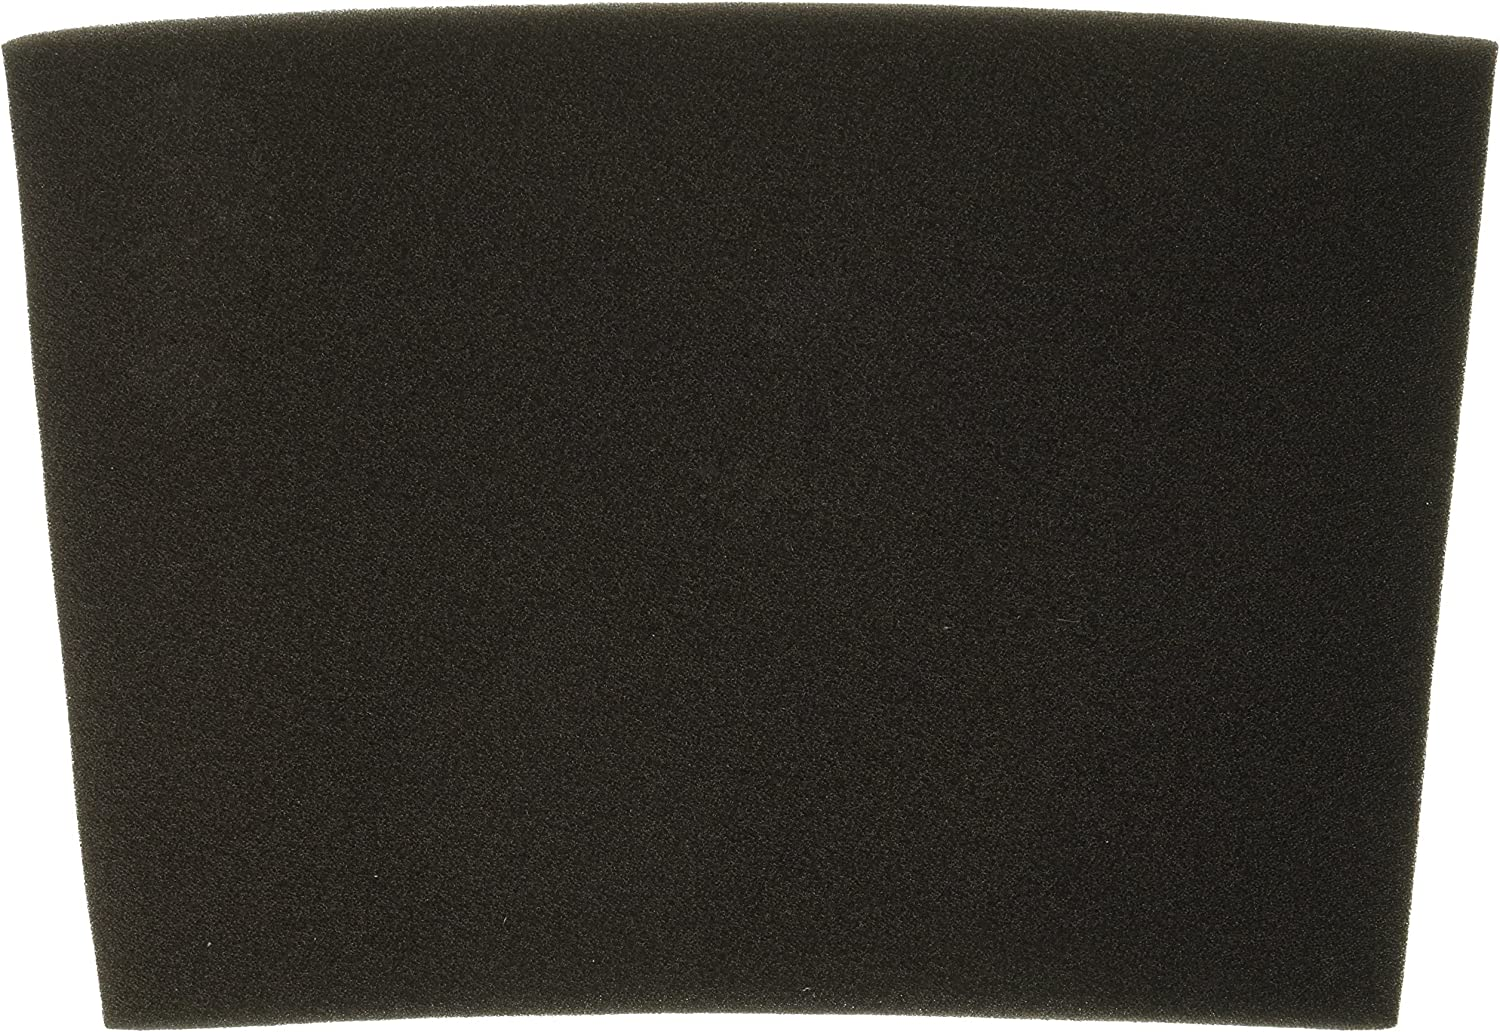 Stanley 19-1600 Foam Filter for 5-18 Gallon Wet/Dry Vacuums